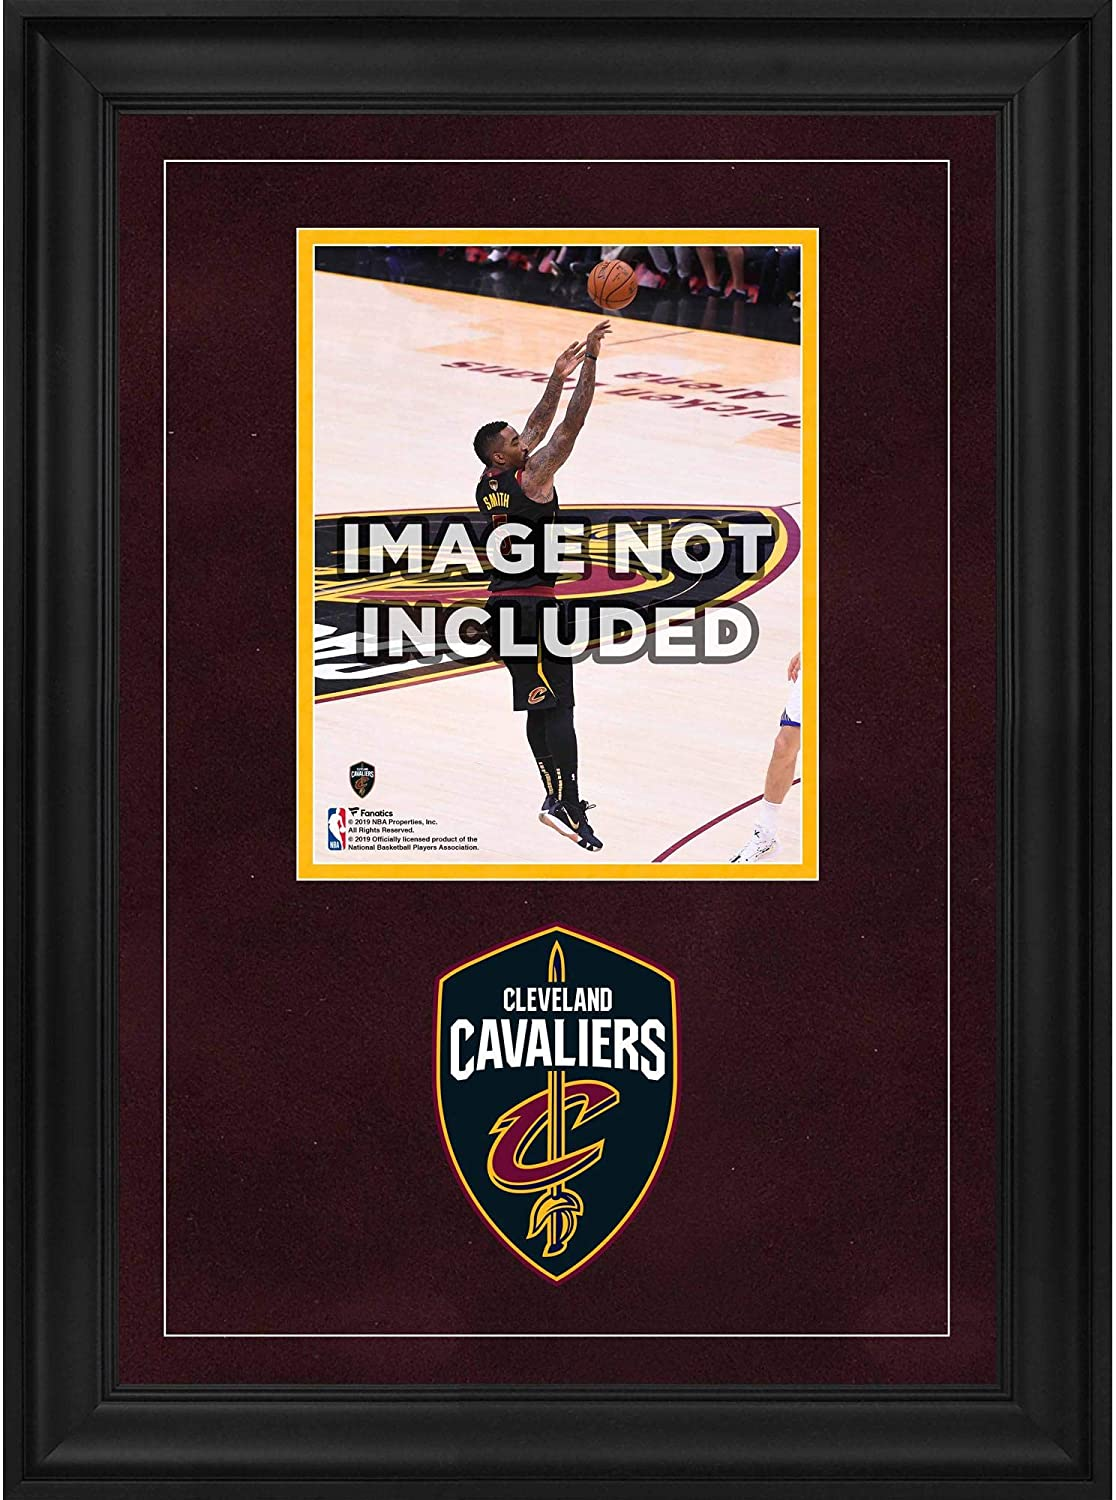 Fanatics Authentic NBA Cleveland Cavaliers Cleveland Cavaliers Deluxe 8